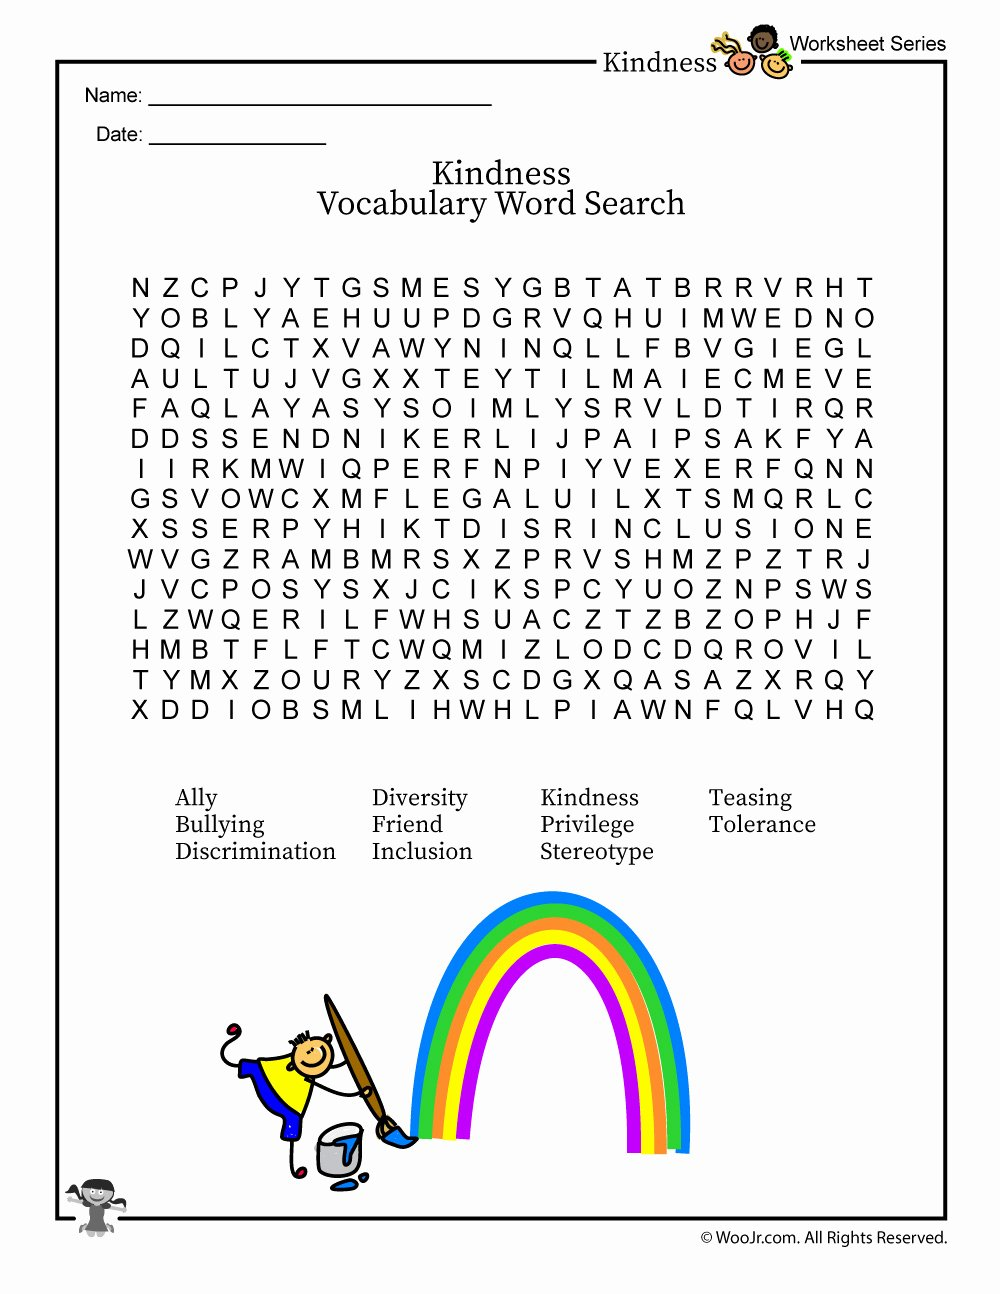 Kindness Worksheets for Preschoolers Fresh Classroom Kindness & Inclusion Vocabulary Word Search